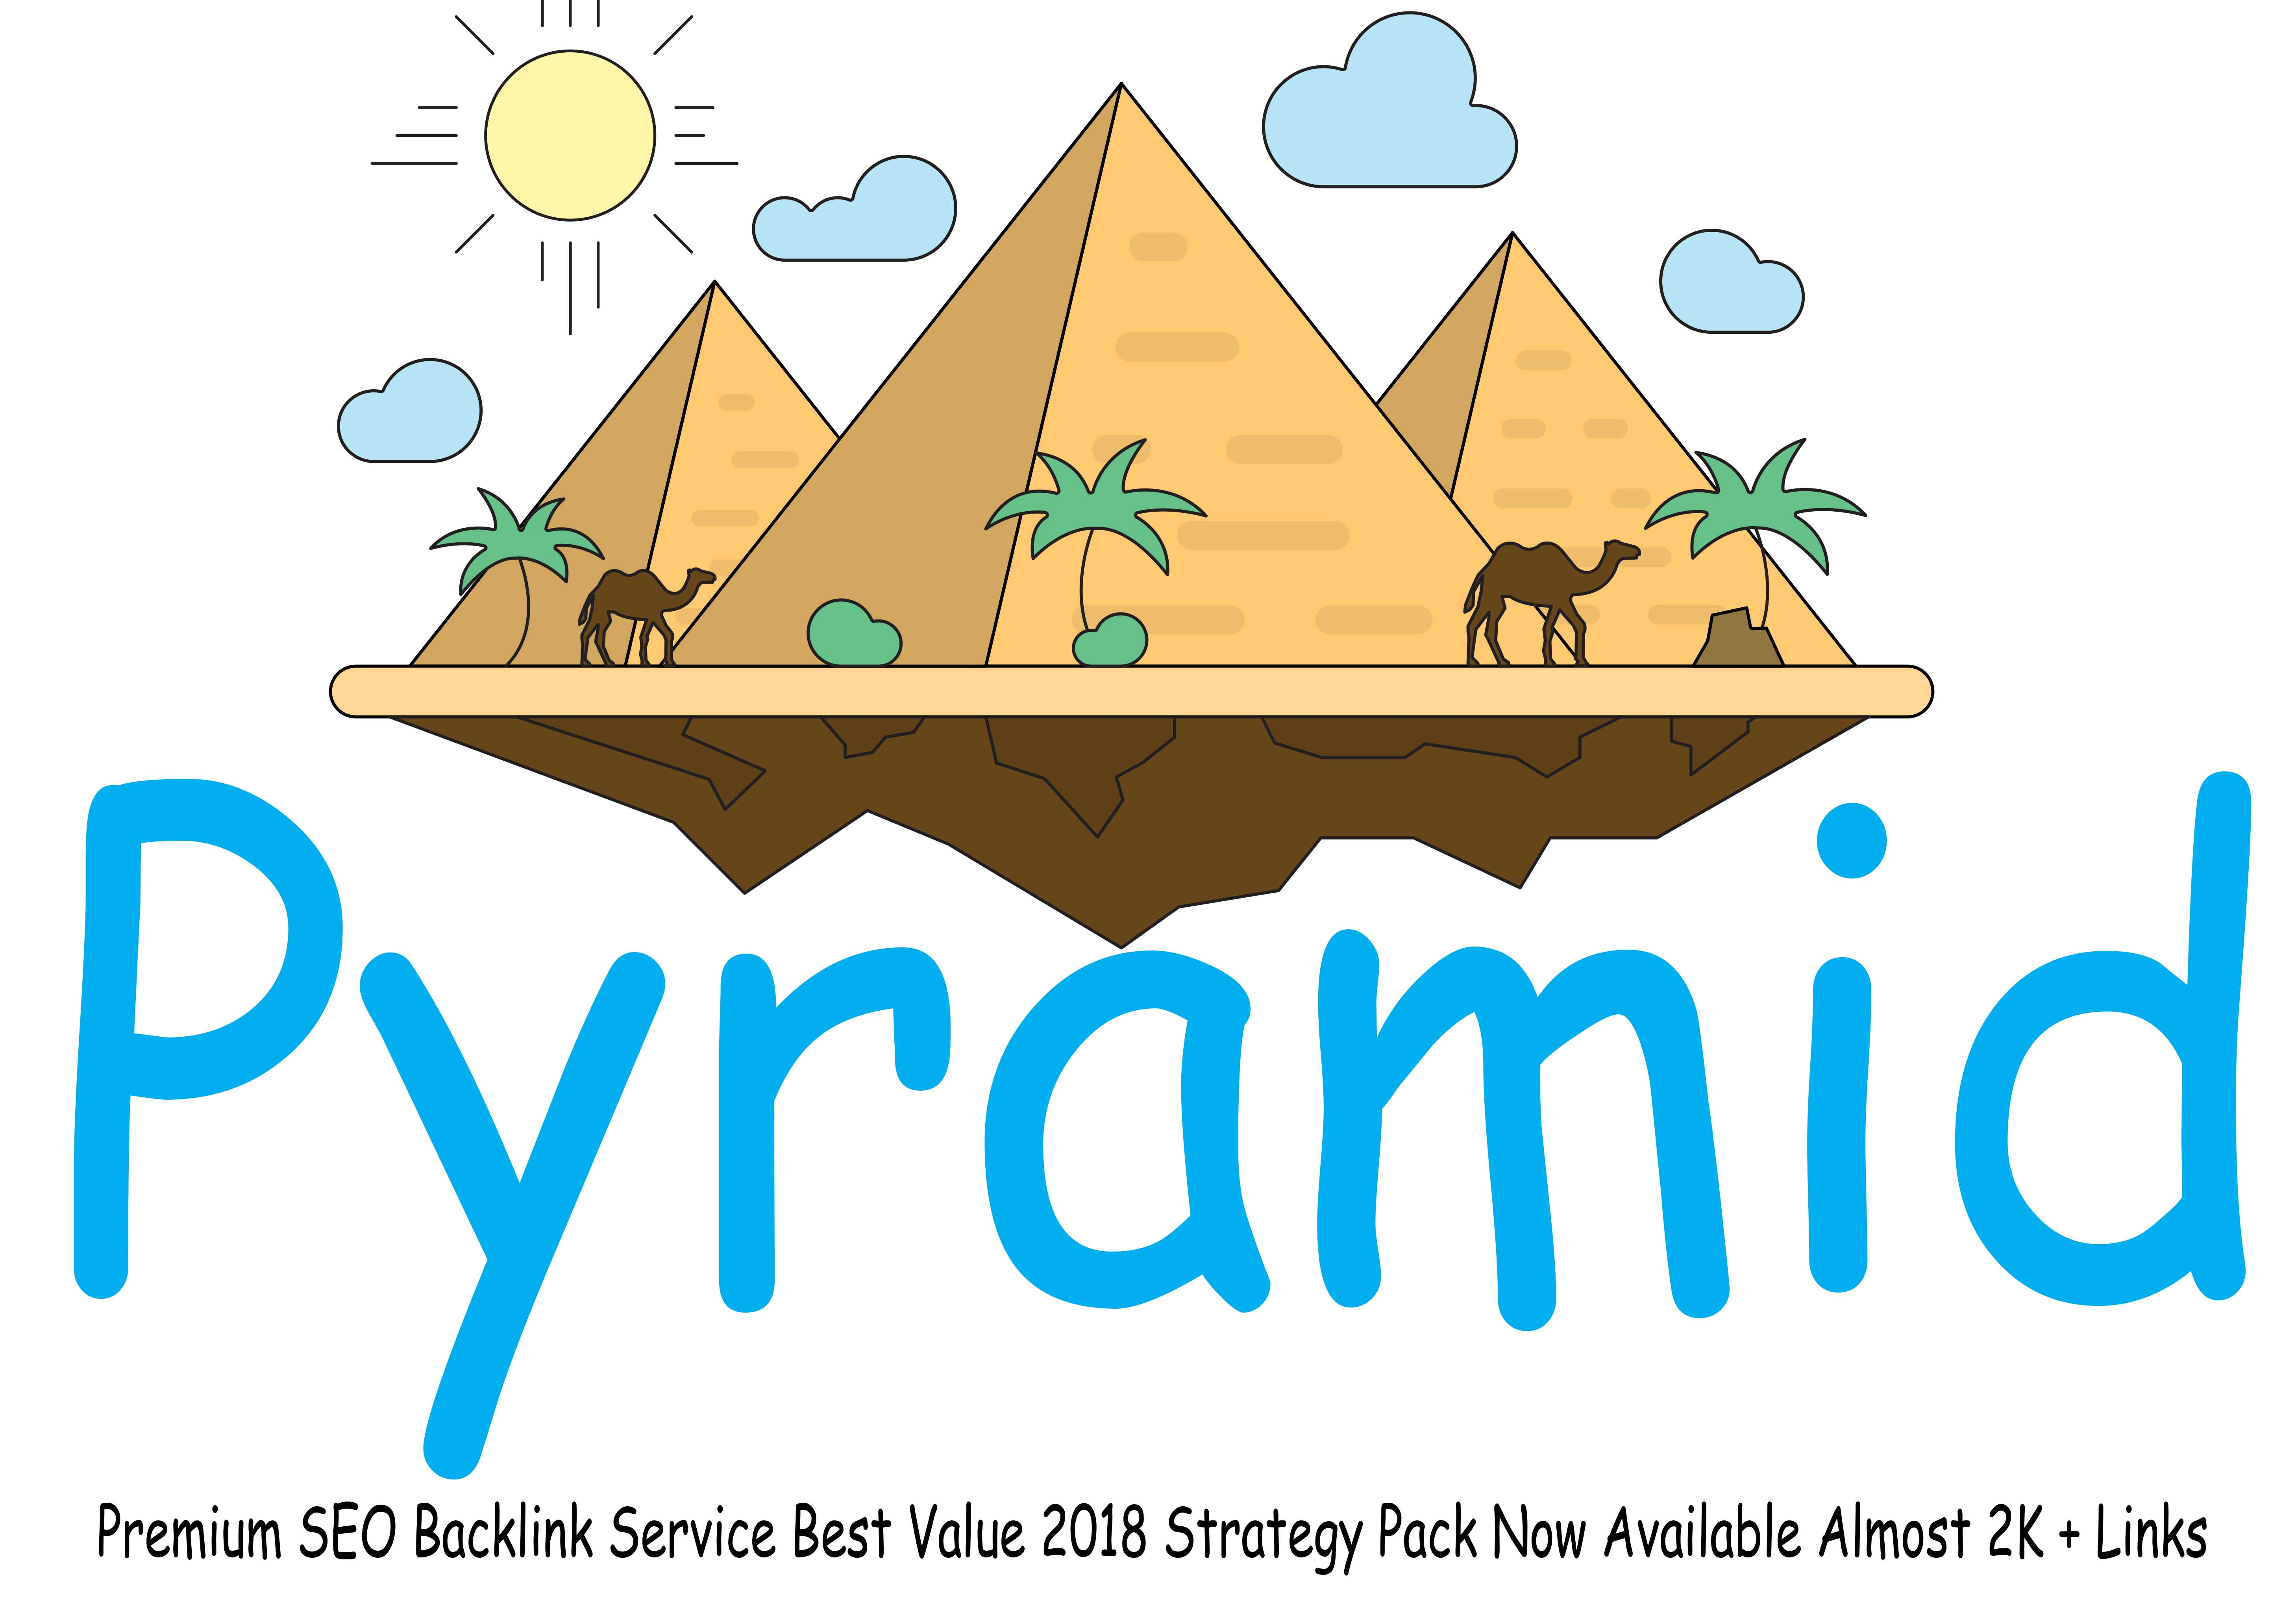 Powerful Ranking Pyramids SEO Backlink Service Best Value 2018 Strategy with log in details report